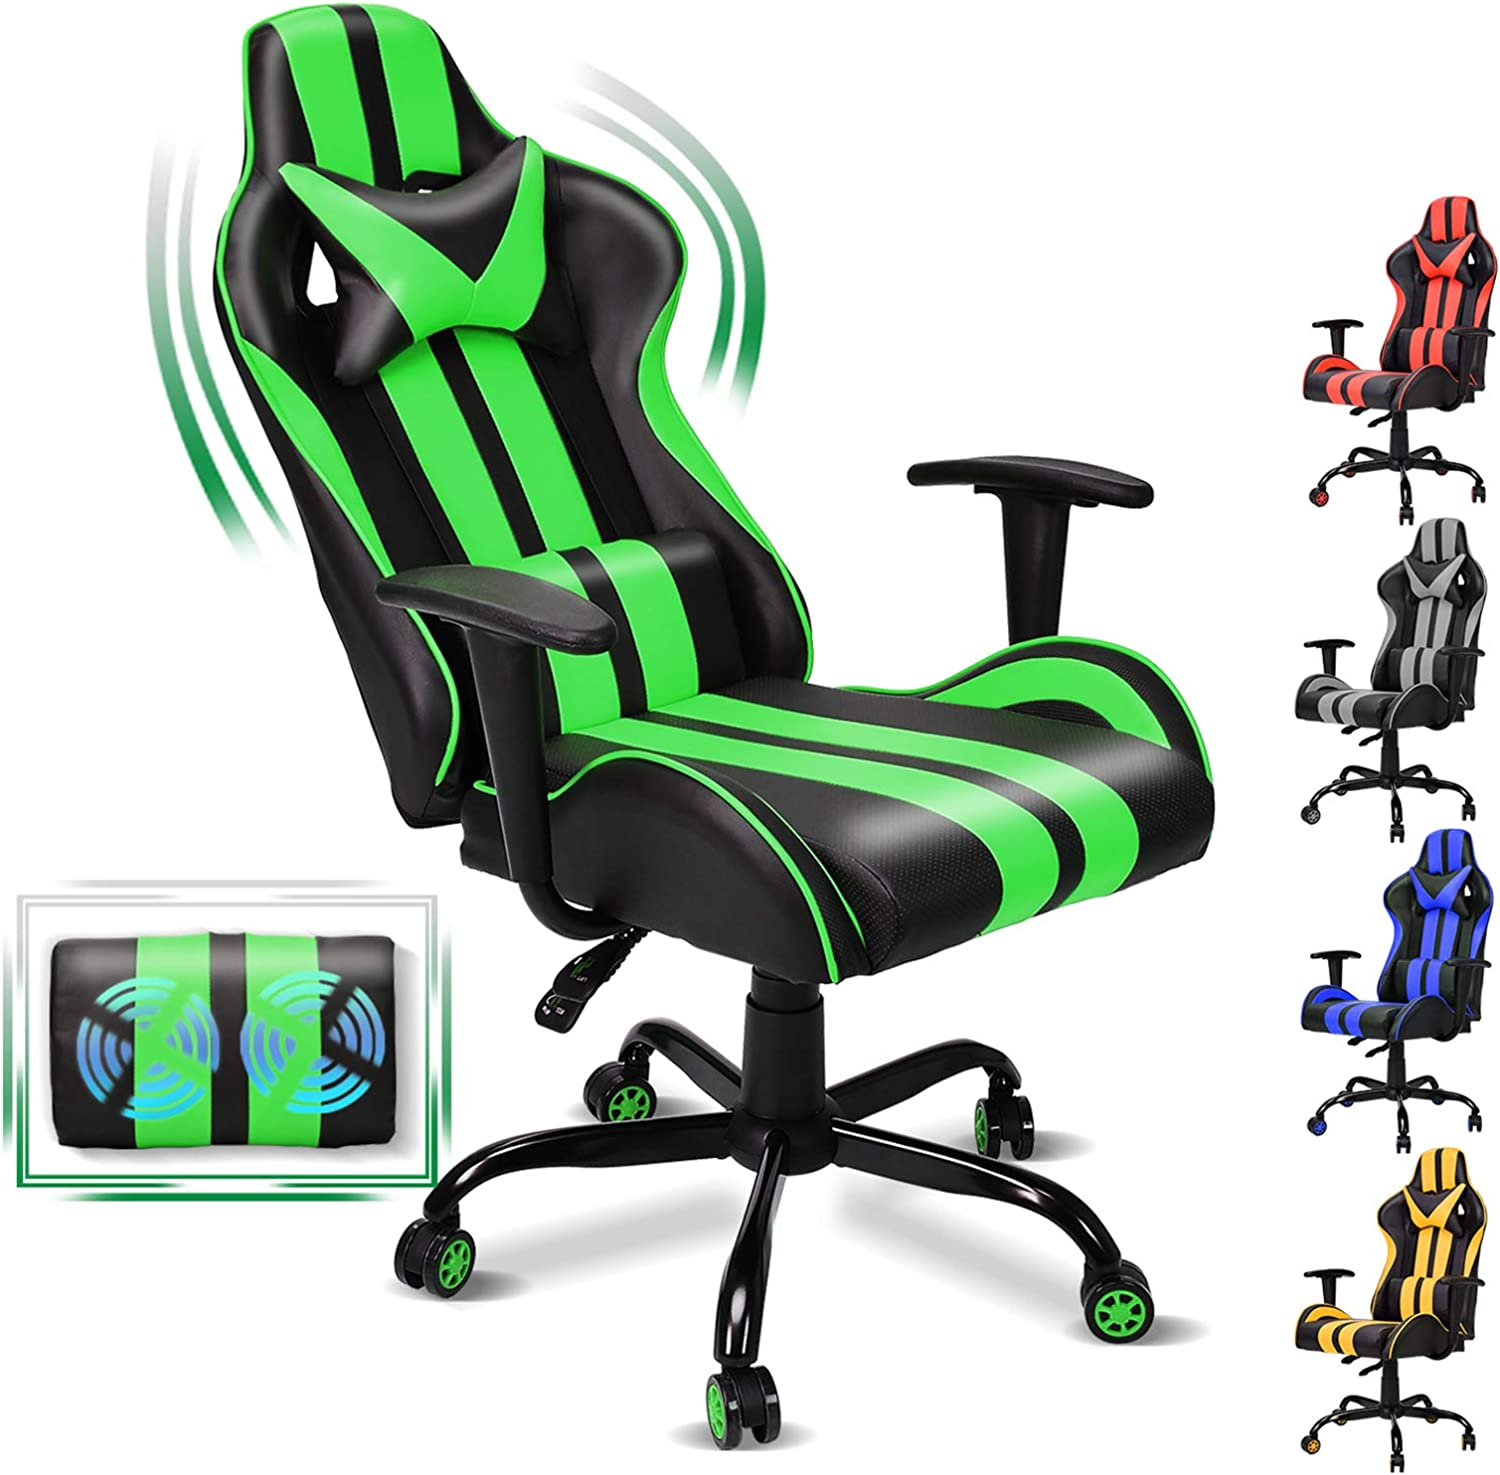 FERGHANA Video Gaming Chair, Massage Gaming Chair, E-Sports Racing Chair with Height and Reliner Adjustment,Headrest and Massage Lumbar Support(Gaming Green)